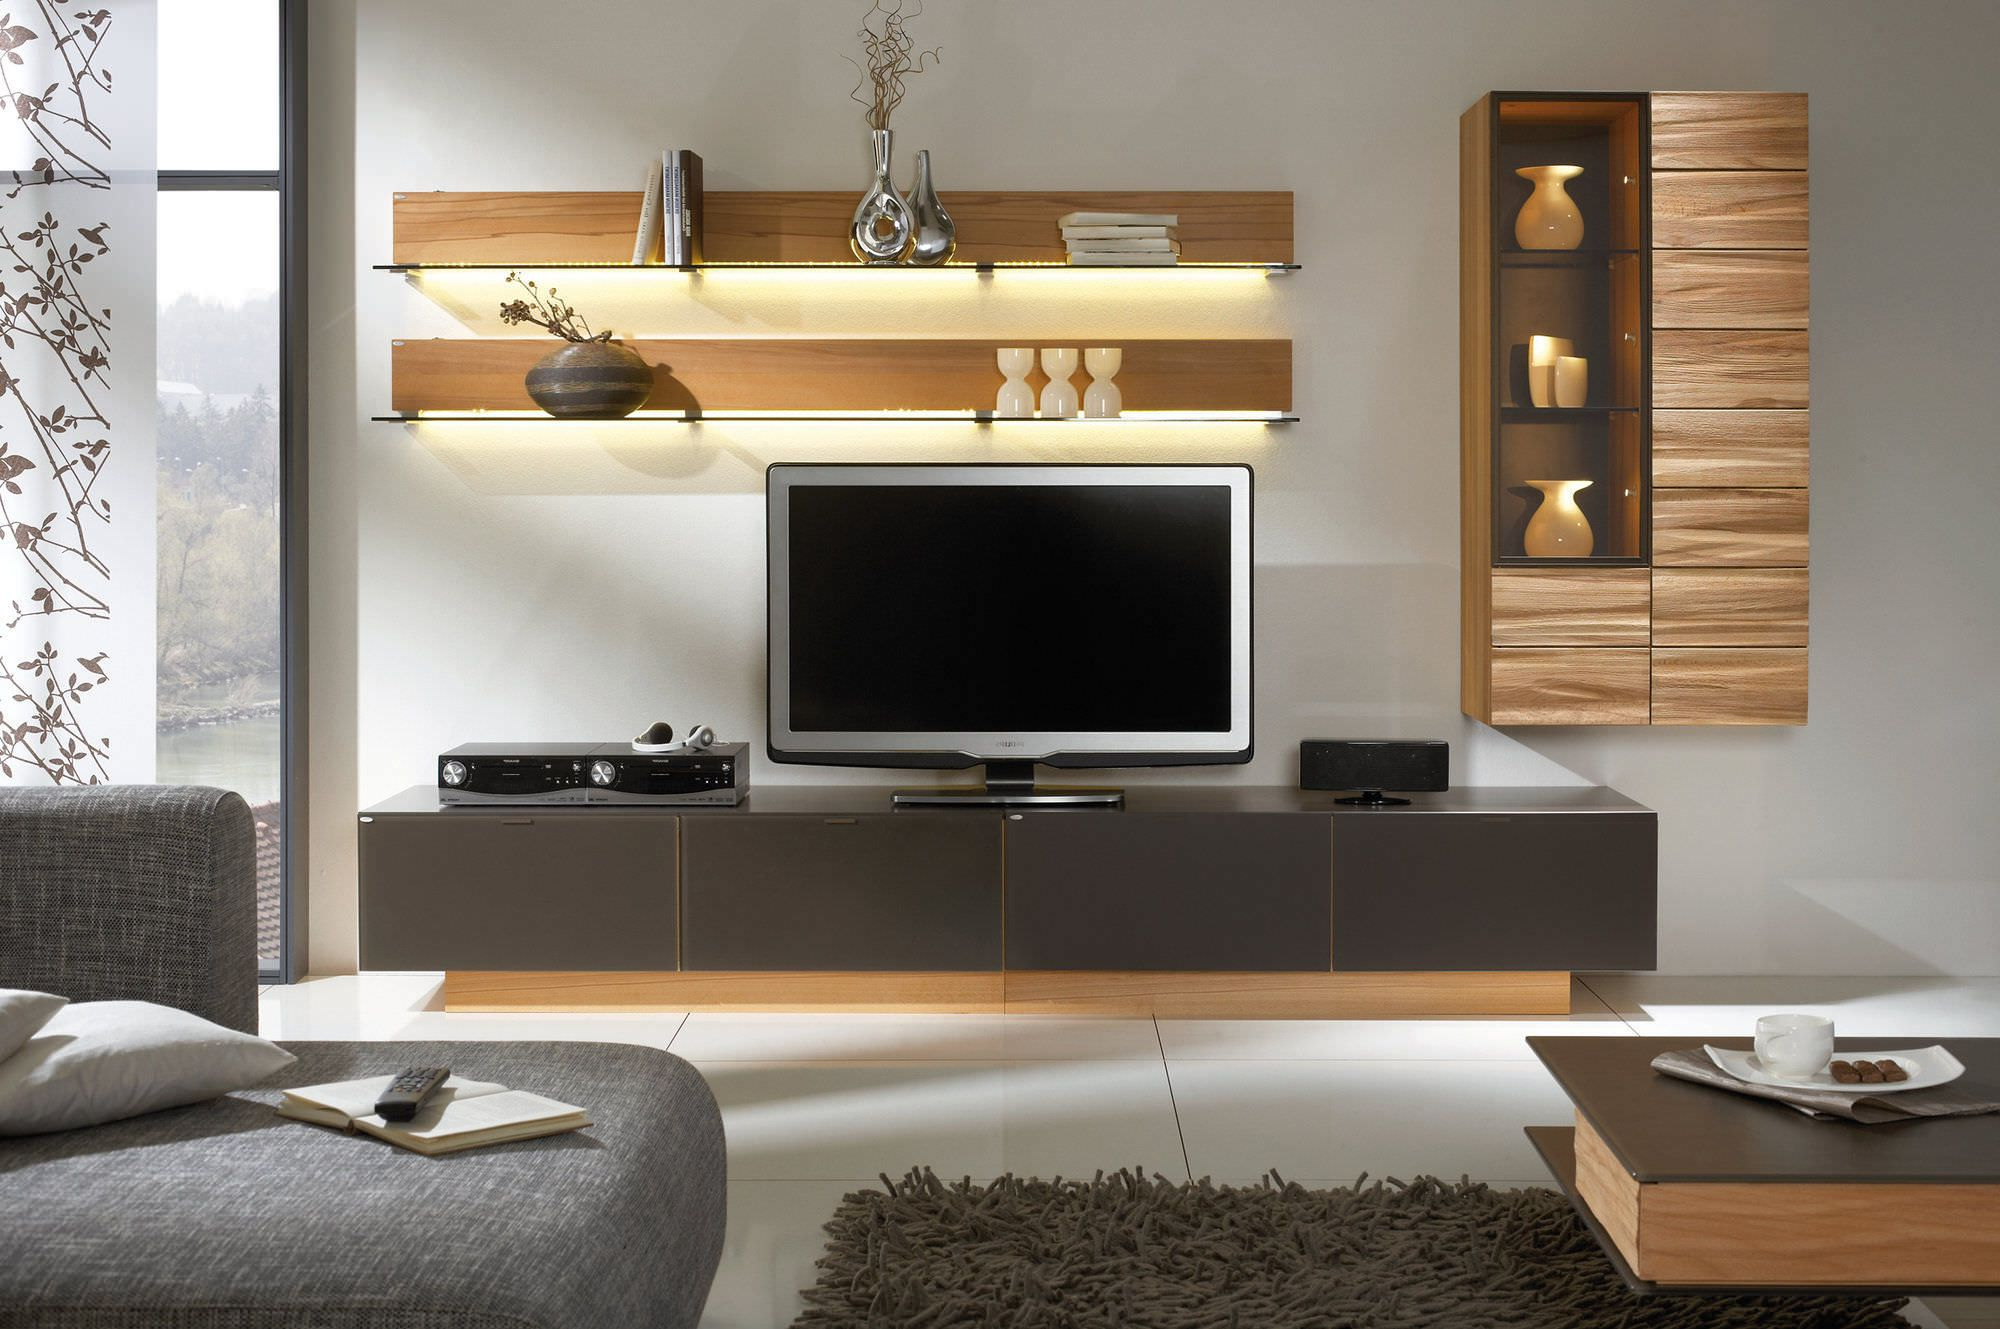 Latest Awesome White Brown Wood Glass Cool Design Contemporary Tv Wall Pertaining To Modern Contemporary Tv Stands (View 6 of 20)